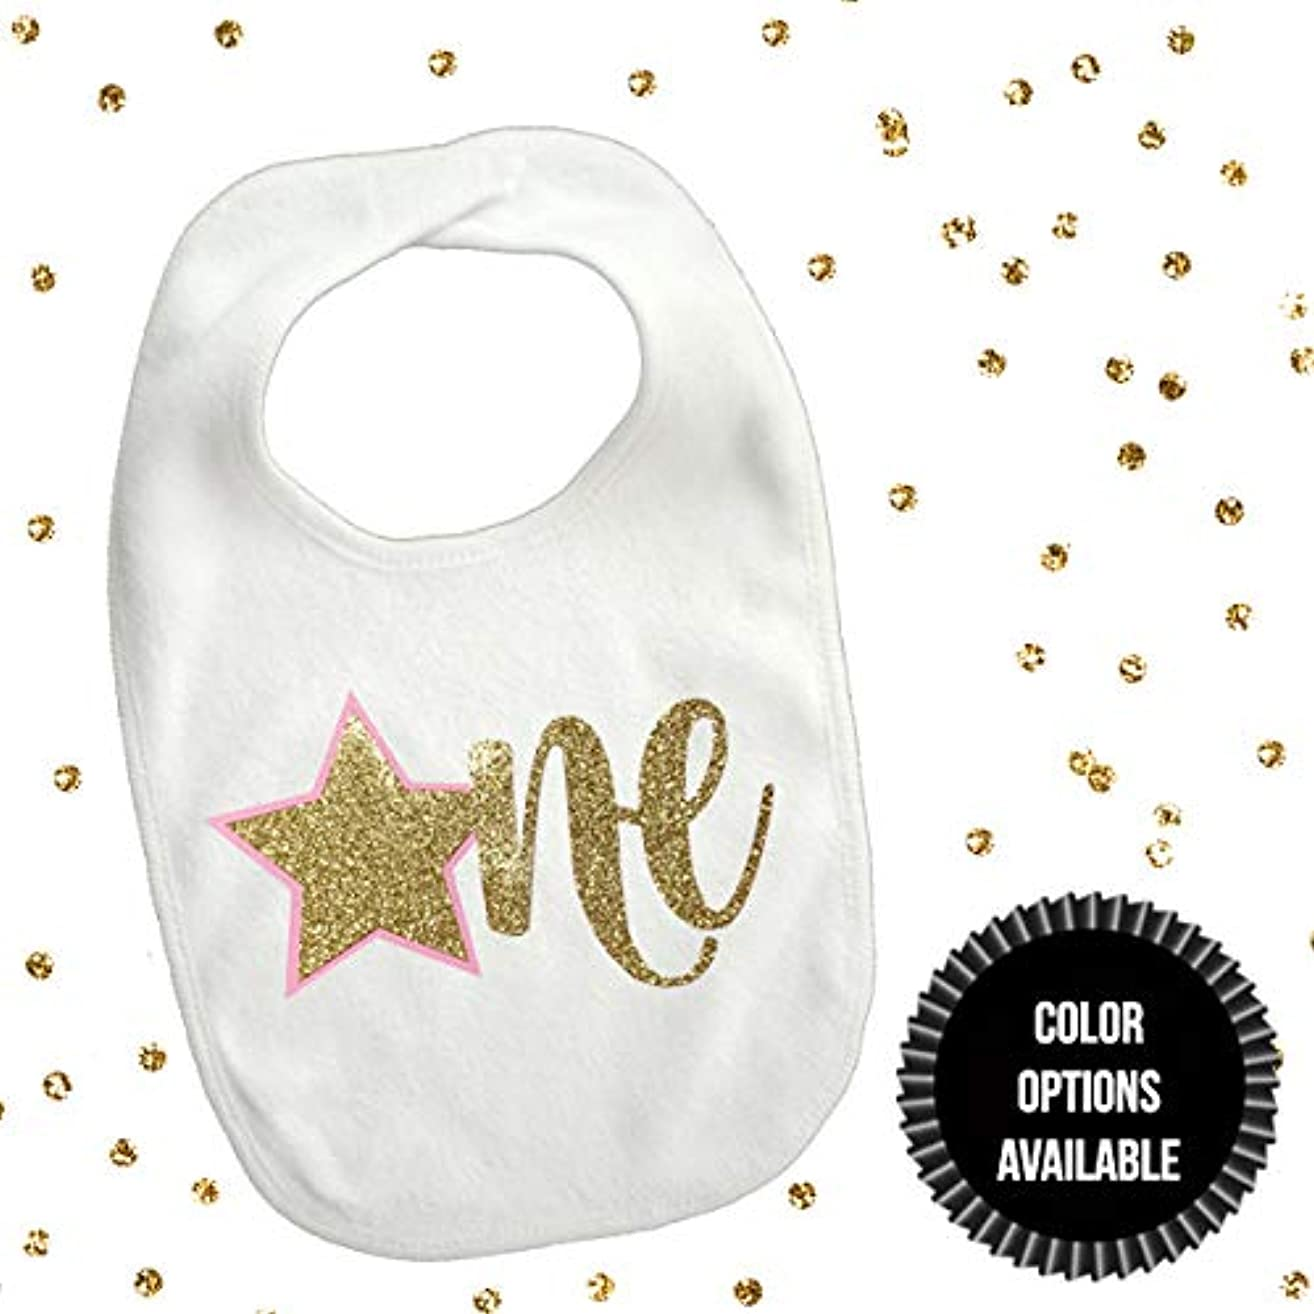 1 piece one star bib toddler boy girl for first birthday gift cake smash photo prop twinkle twinkle little star